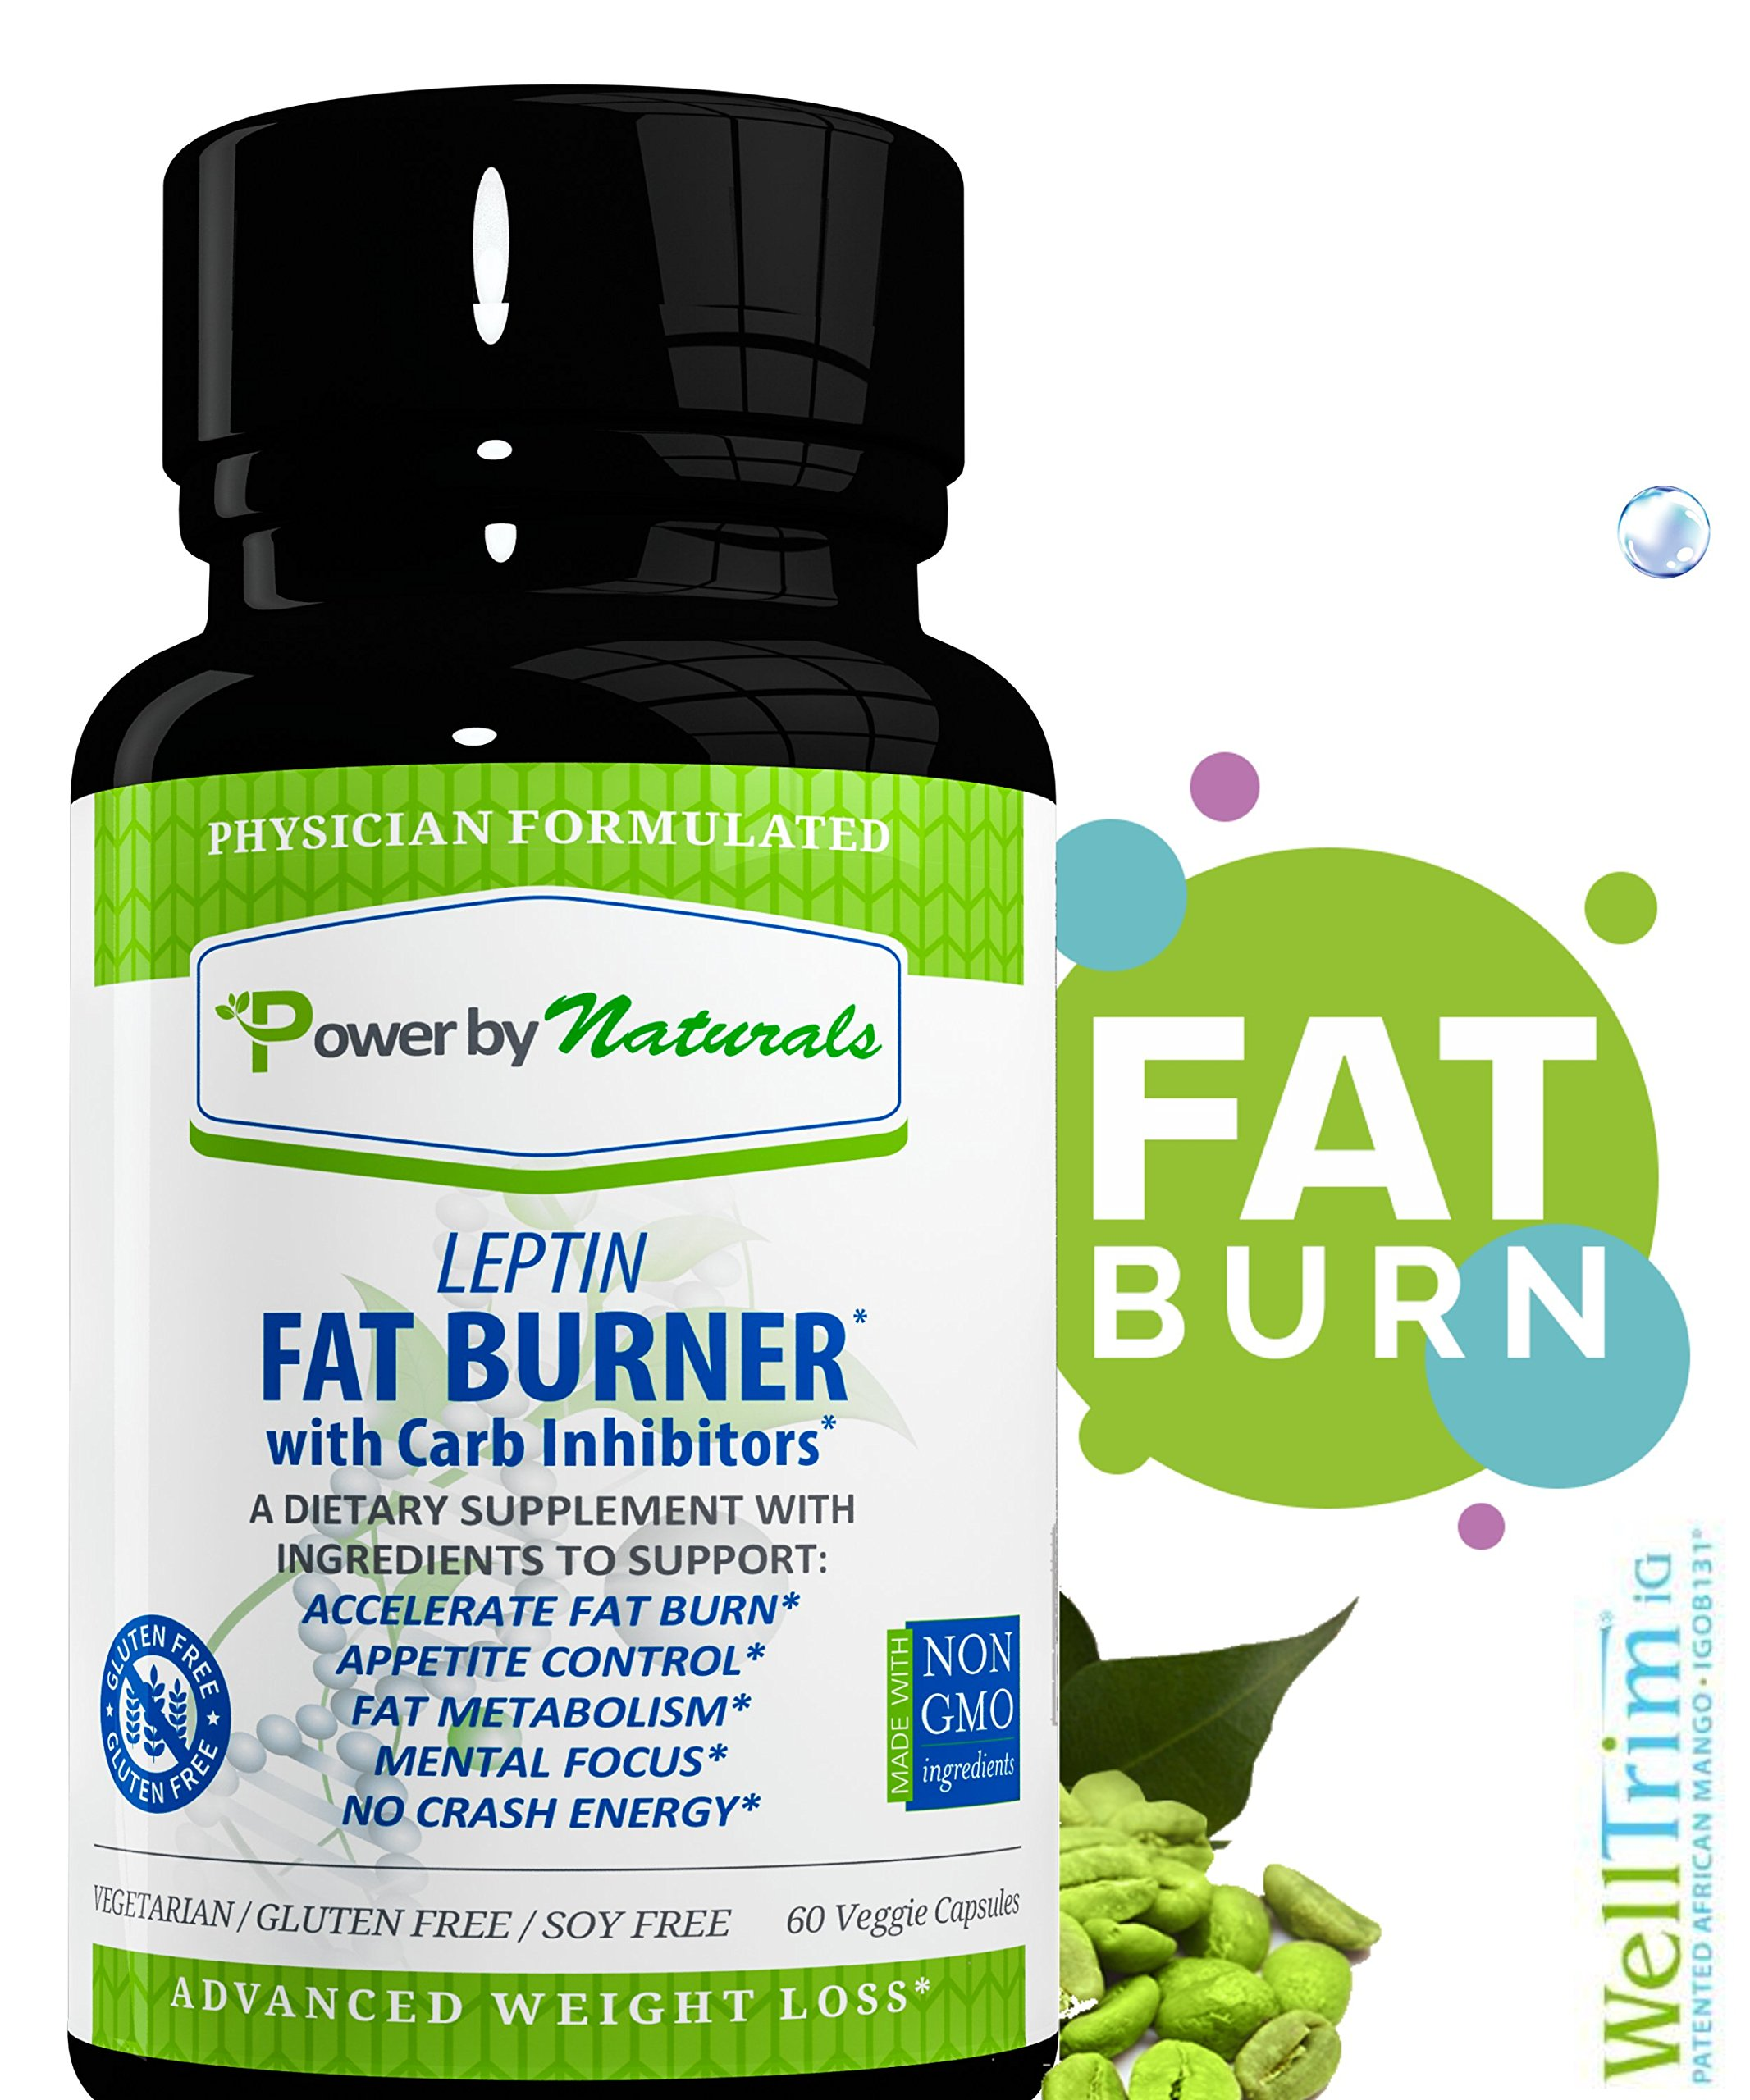 PbyN - Dr Formulated - Leptin Fat Burner with Carb Inhibitor, Metabolic Natural Weight Loss Supplement, Thermogenic Fat Burn for Men and Women, Appetite Suppressant, Carb Blocker, 60 Diet Pills by Power By Naturals